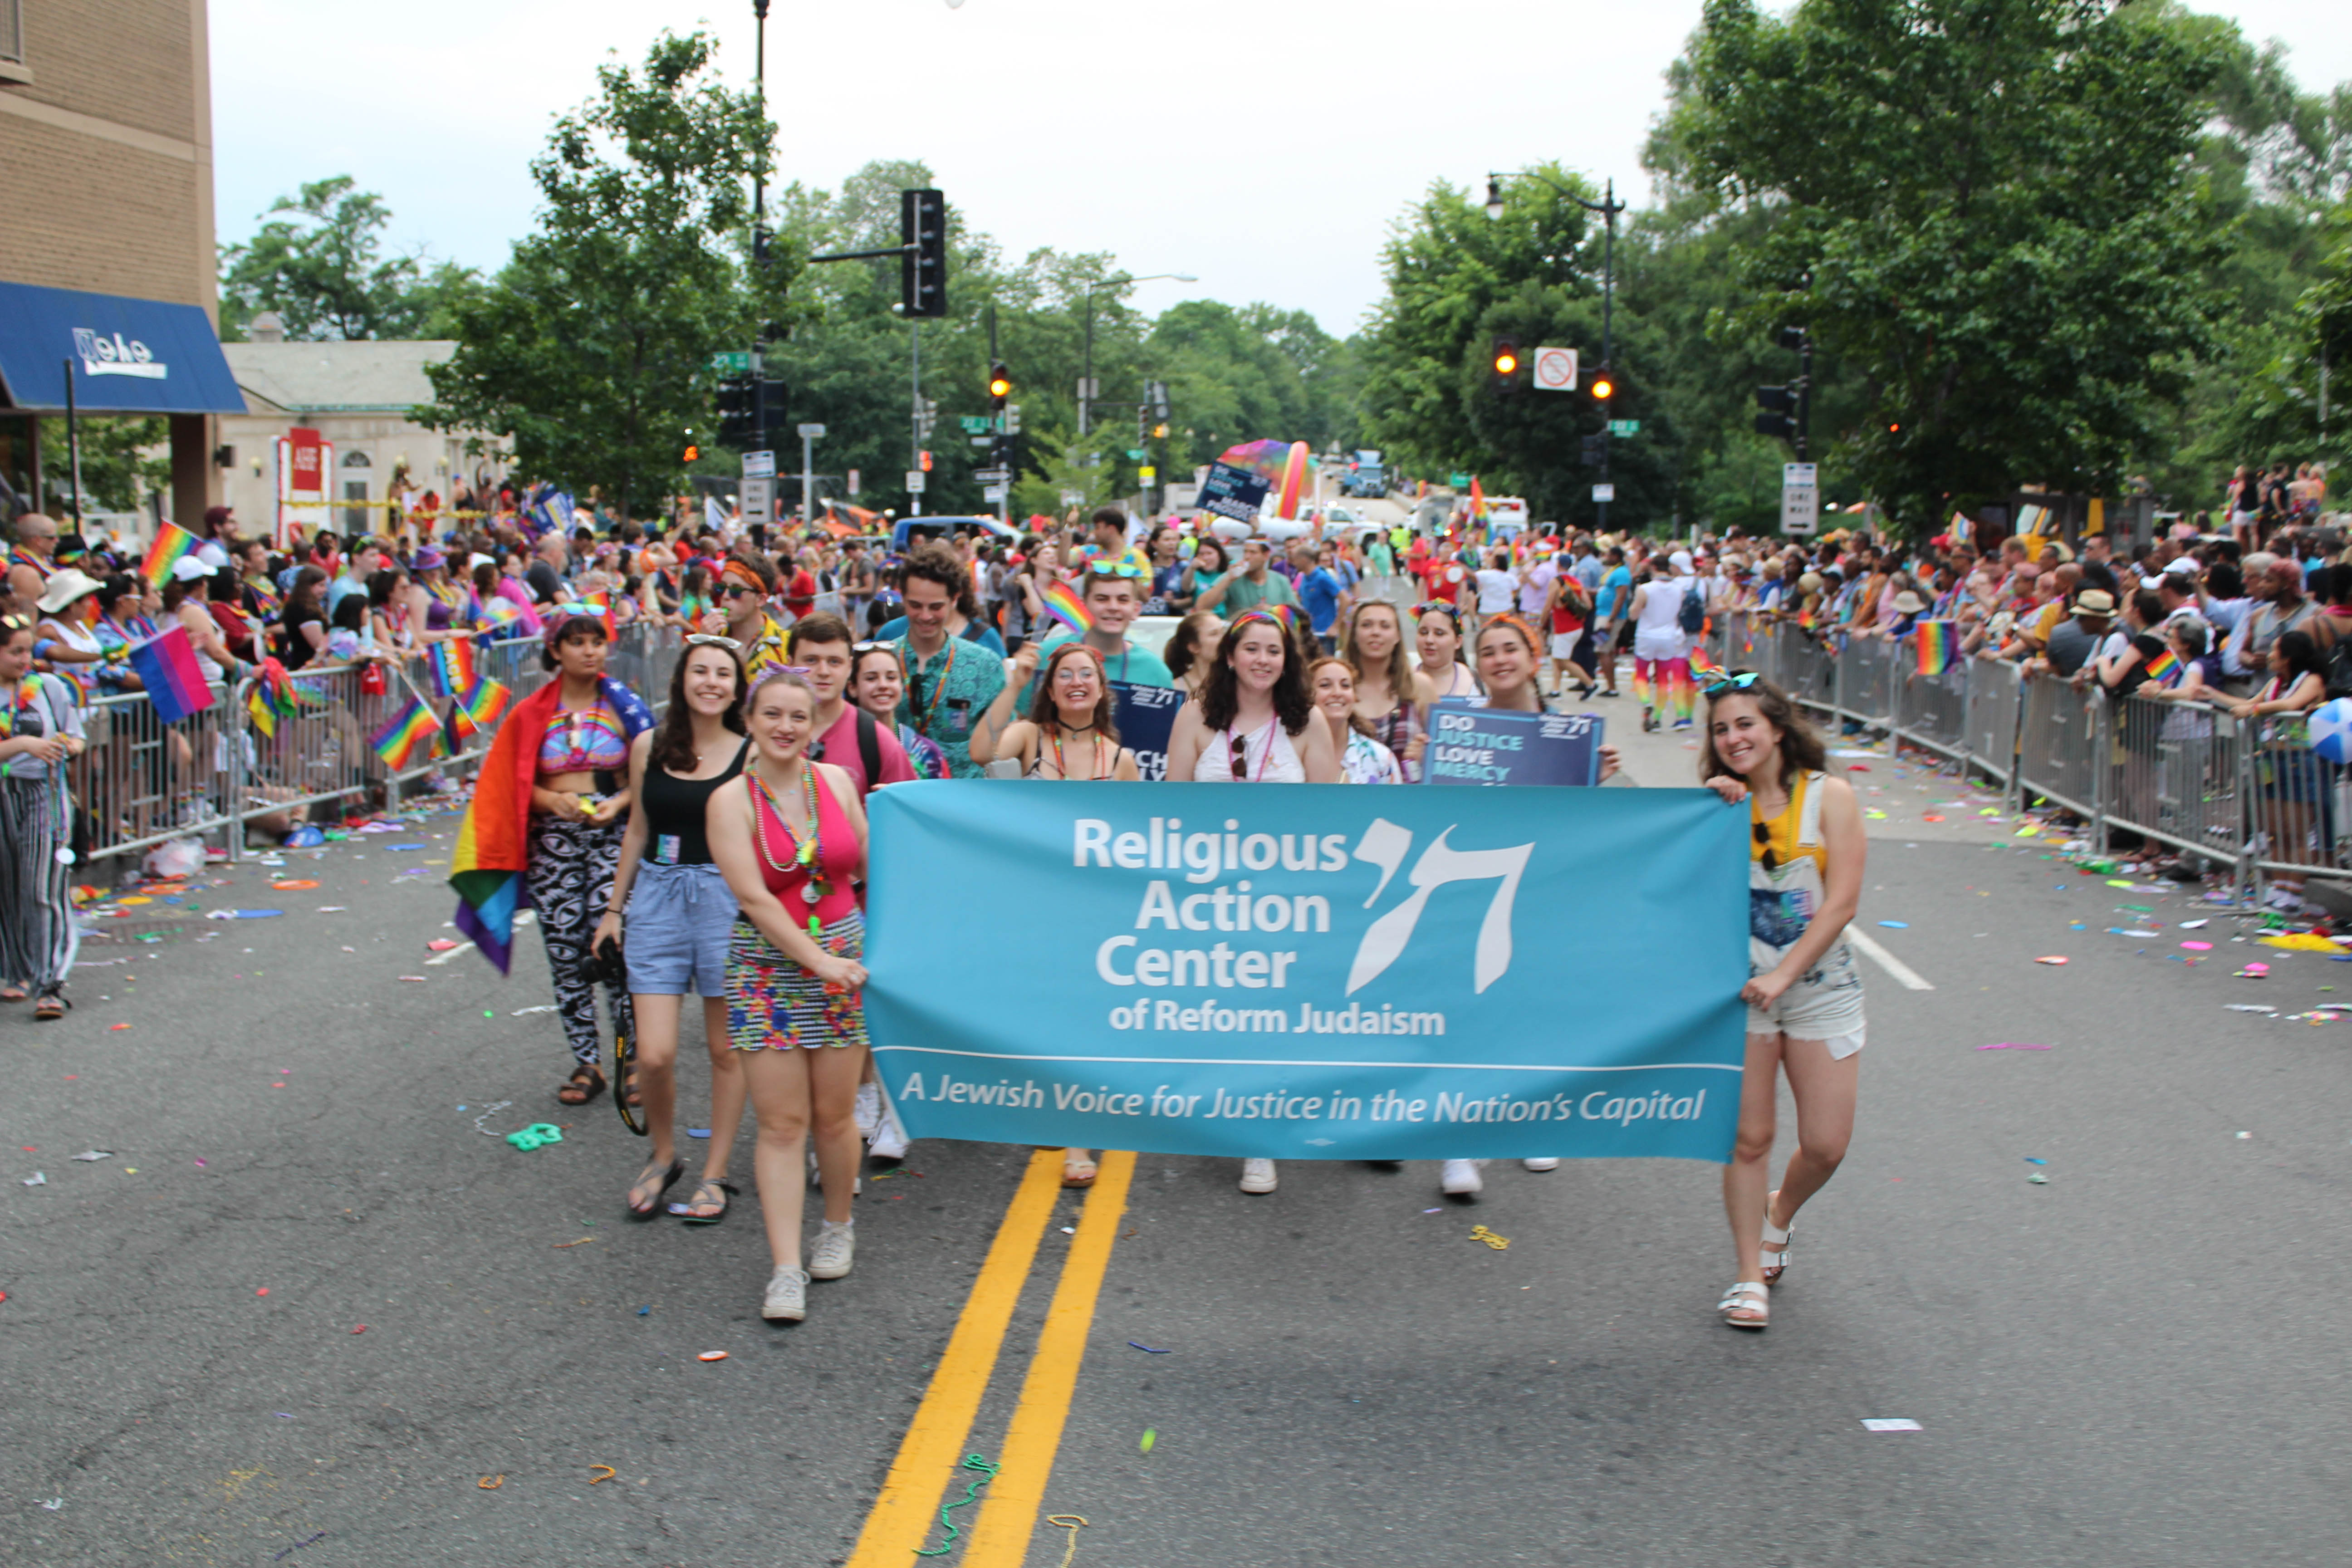 The Religious Action Center contingent marches in the 2018 Capital Pride Parade with banner